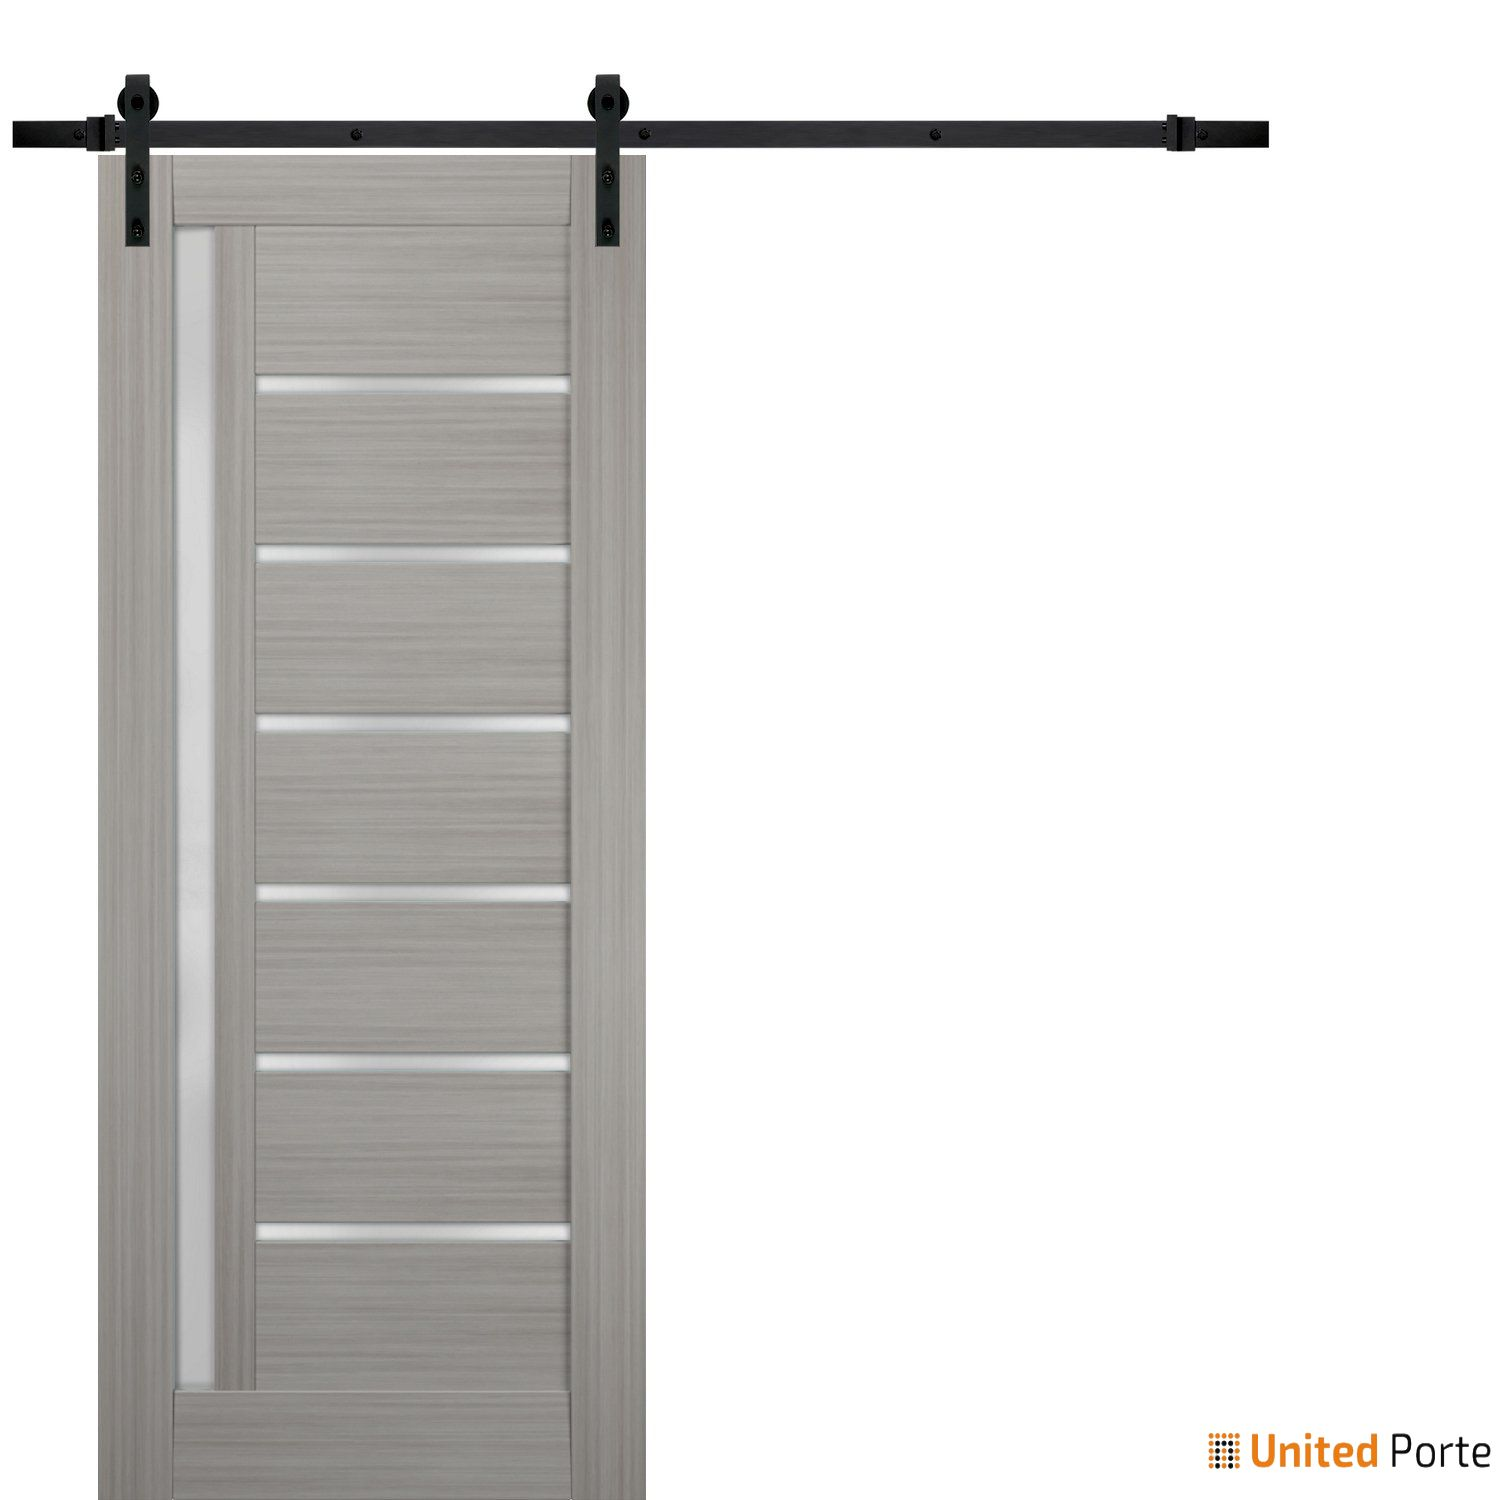 Quadro 4088 Grey Ash with Frosted Opaque Glass Sliding Barn Door with Black Hardware   Lite Wooden Solid Panel Interior Barn Doors